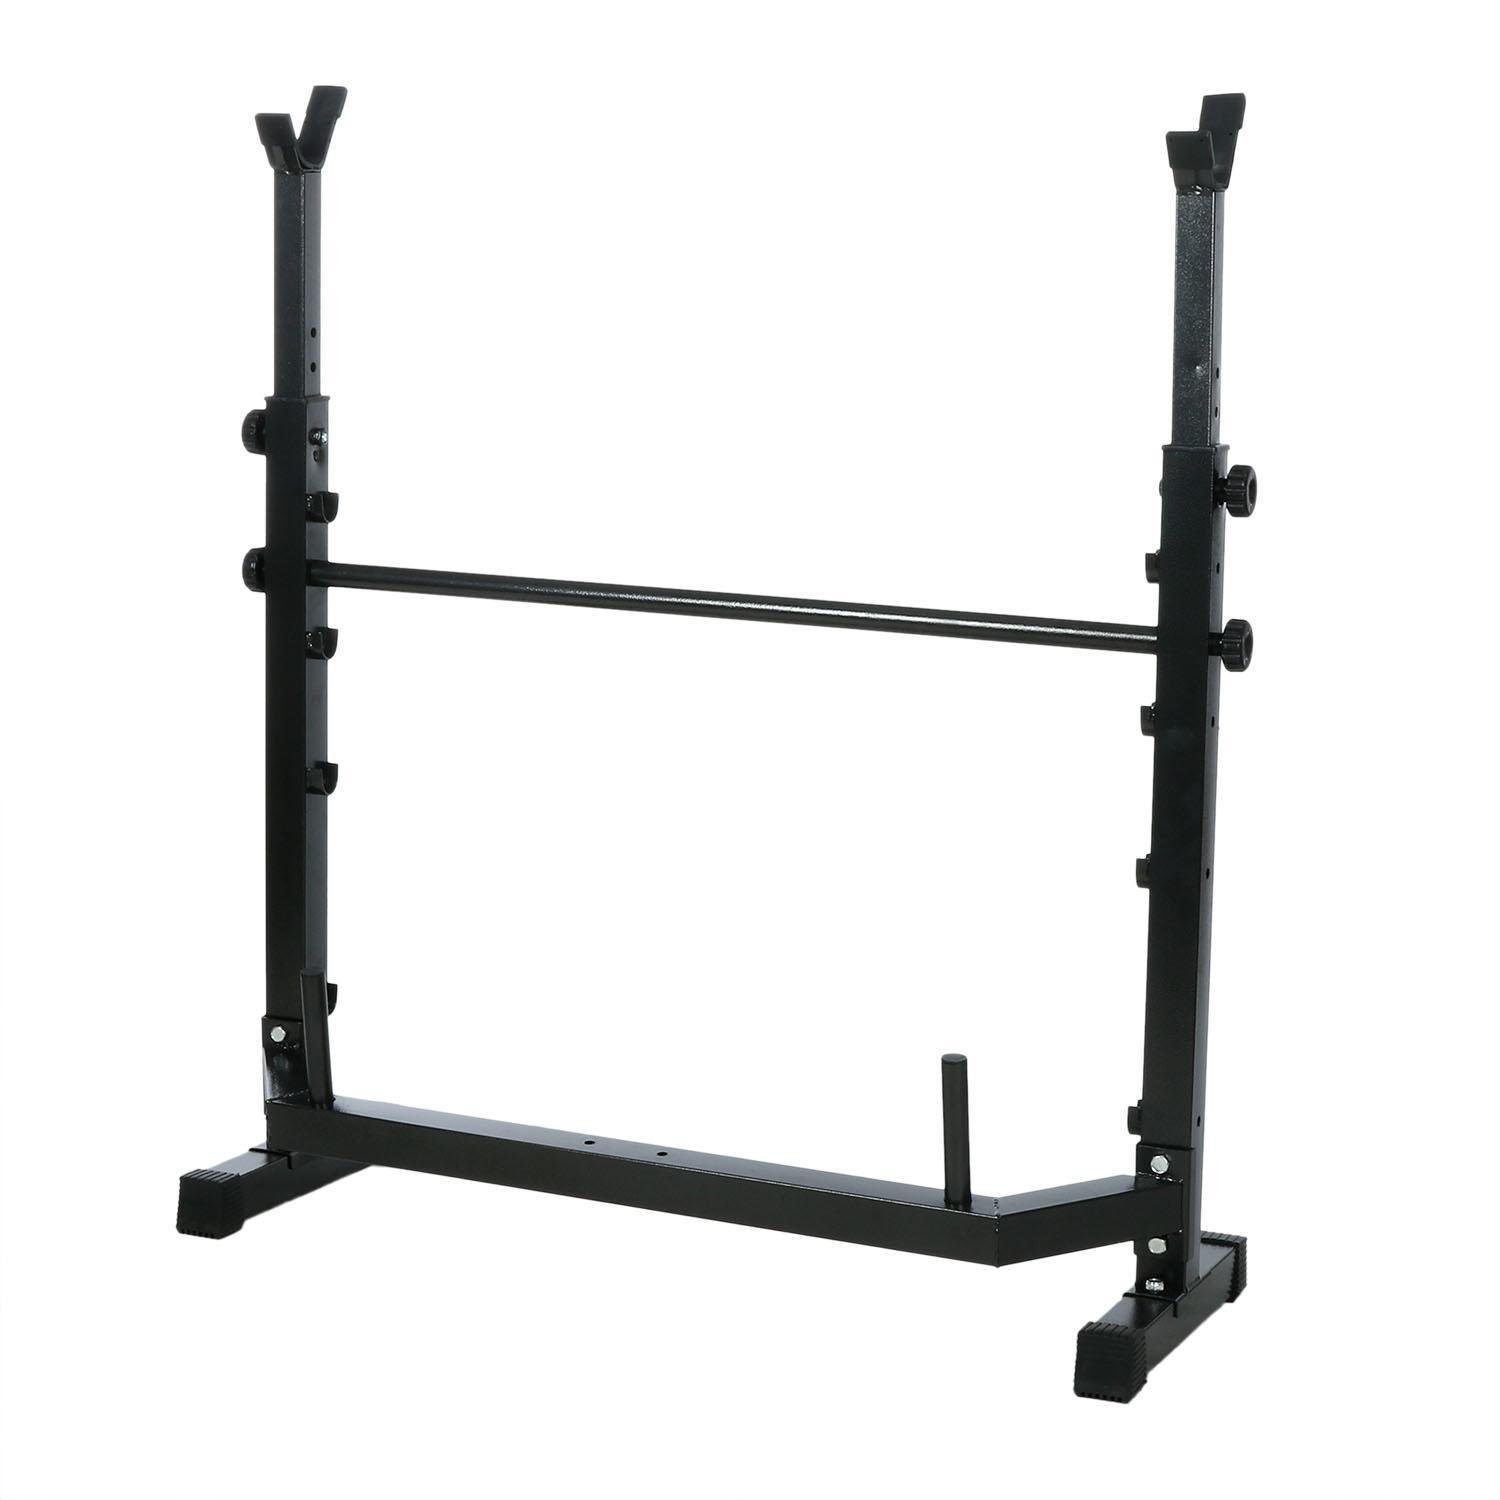 Olympic Wider Weight Bench Set for Home Gym Workout Power Training Exercising, Adjustable Bench Seat with Barbell Rack by Evokem (Image #5)